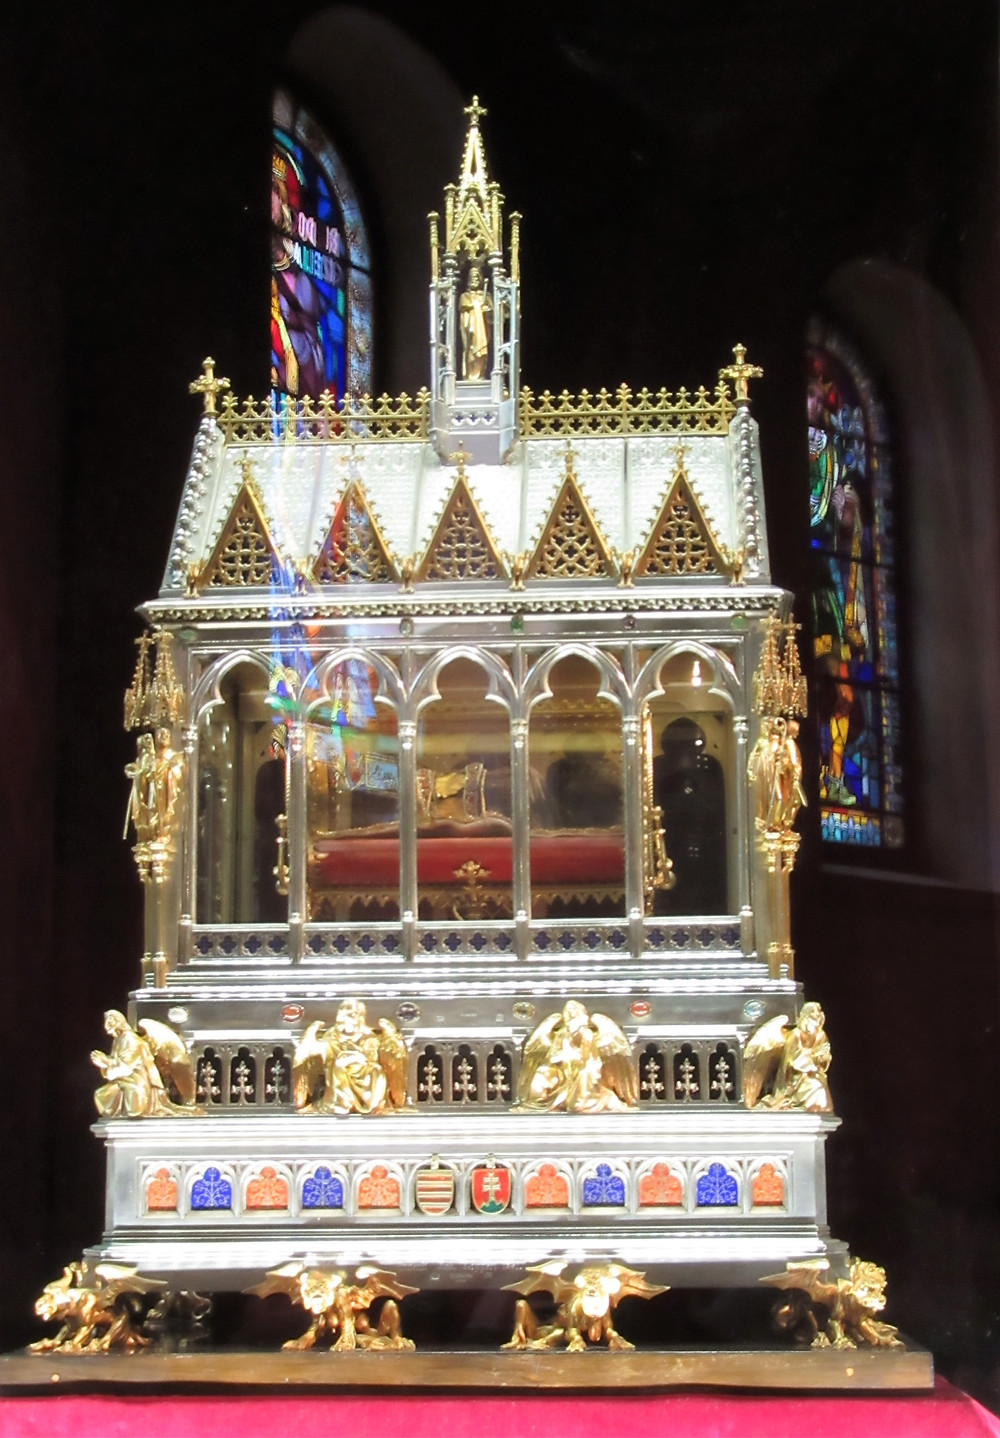 On display in St Stephen's Basilica is the mummified hand of St Stephen